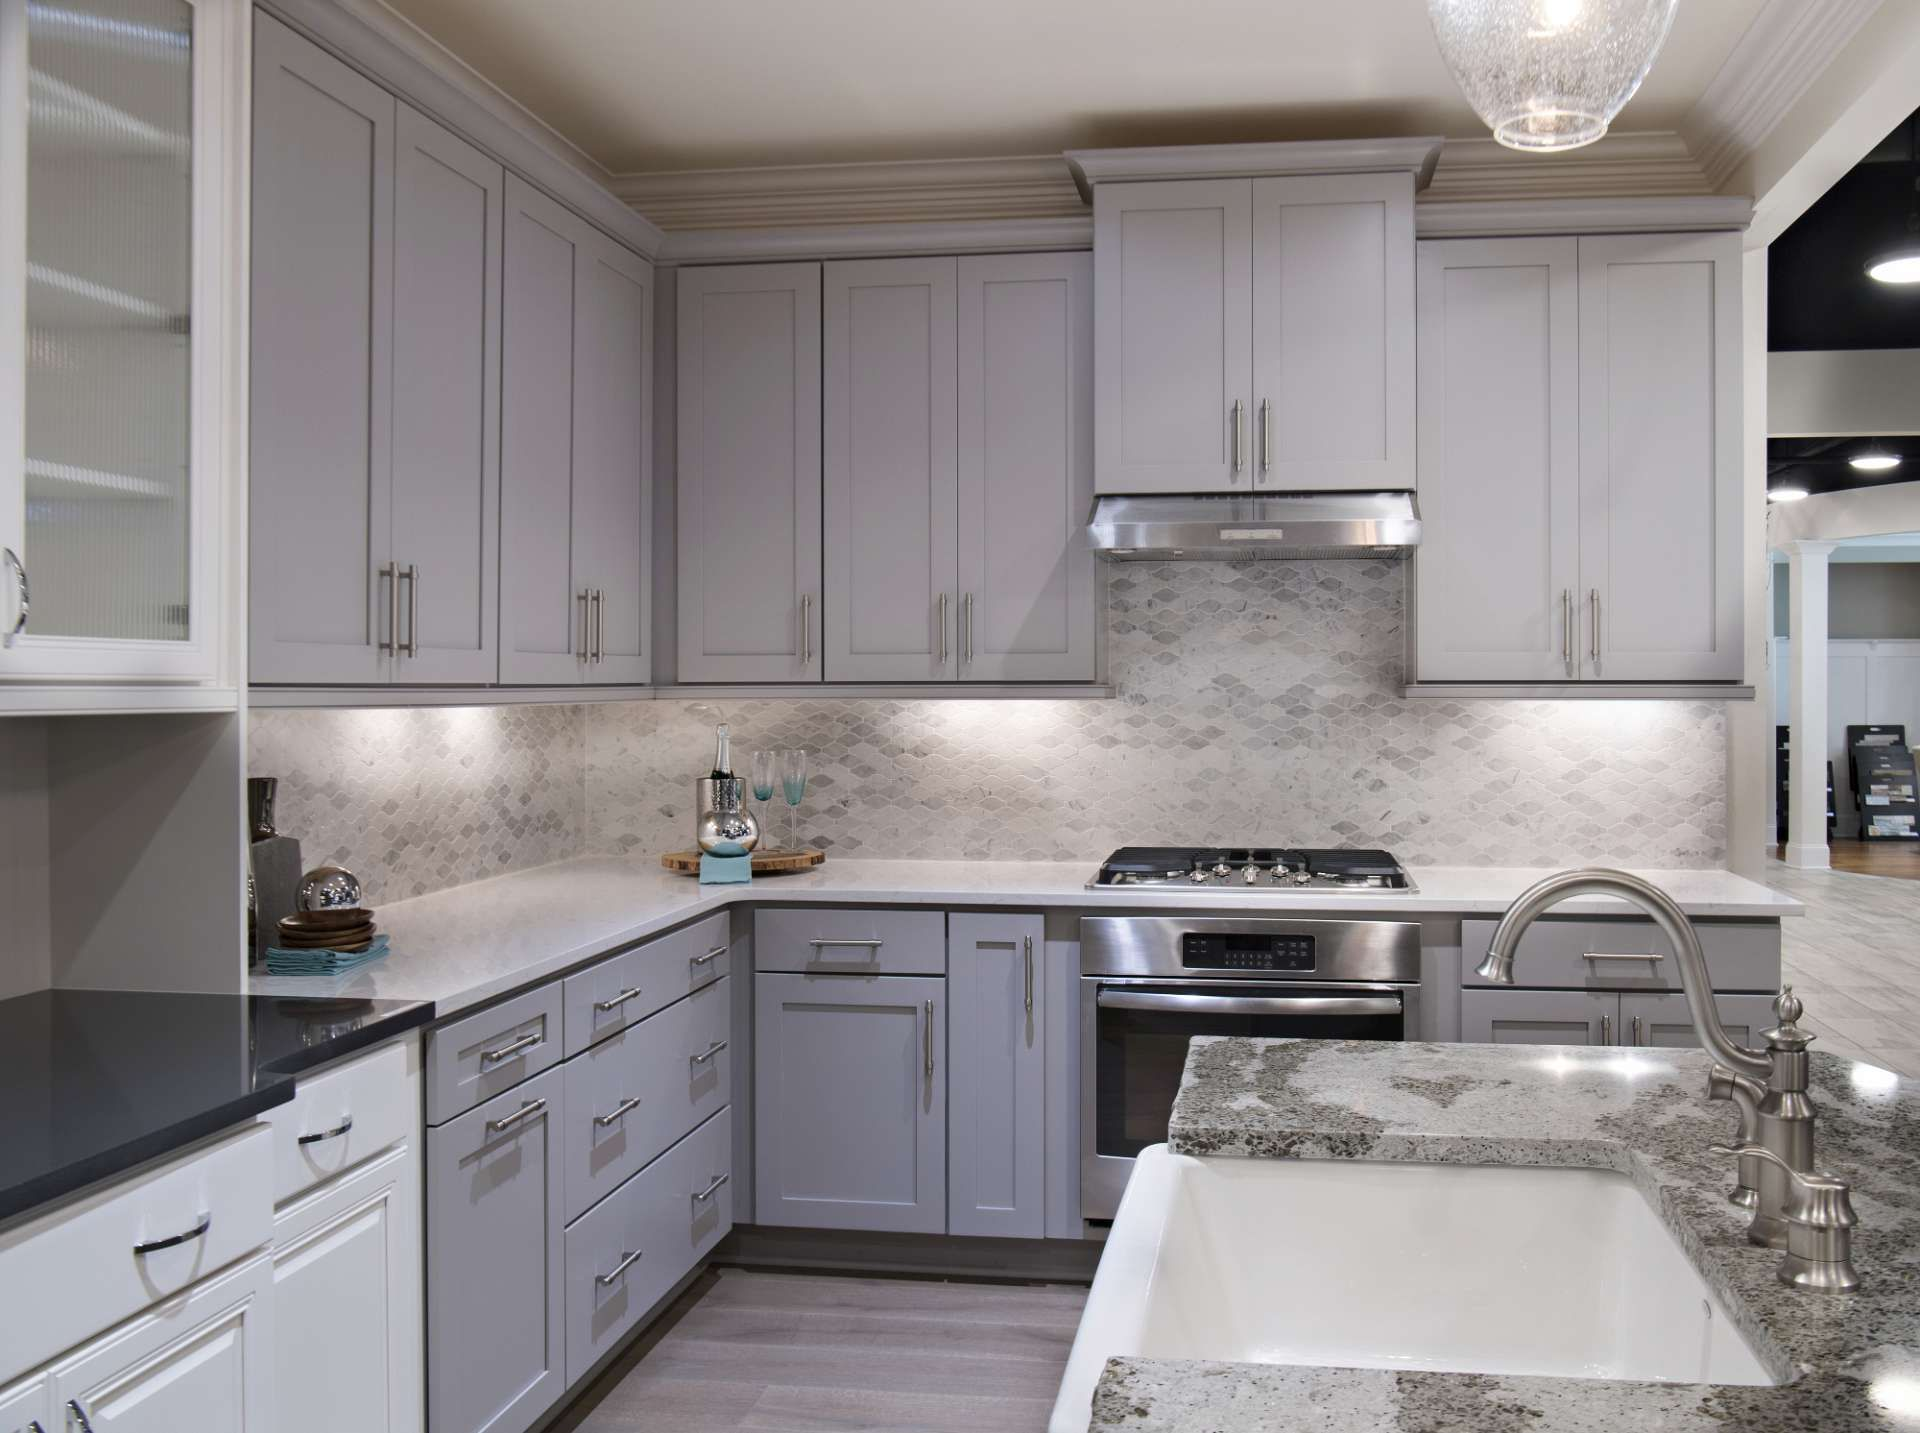 lovely kitchen counter deco | This lovely kitchen in our design studio features the ...